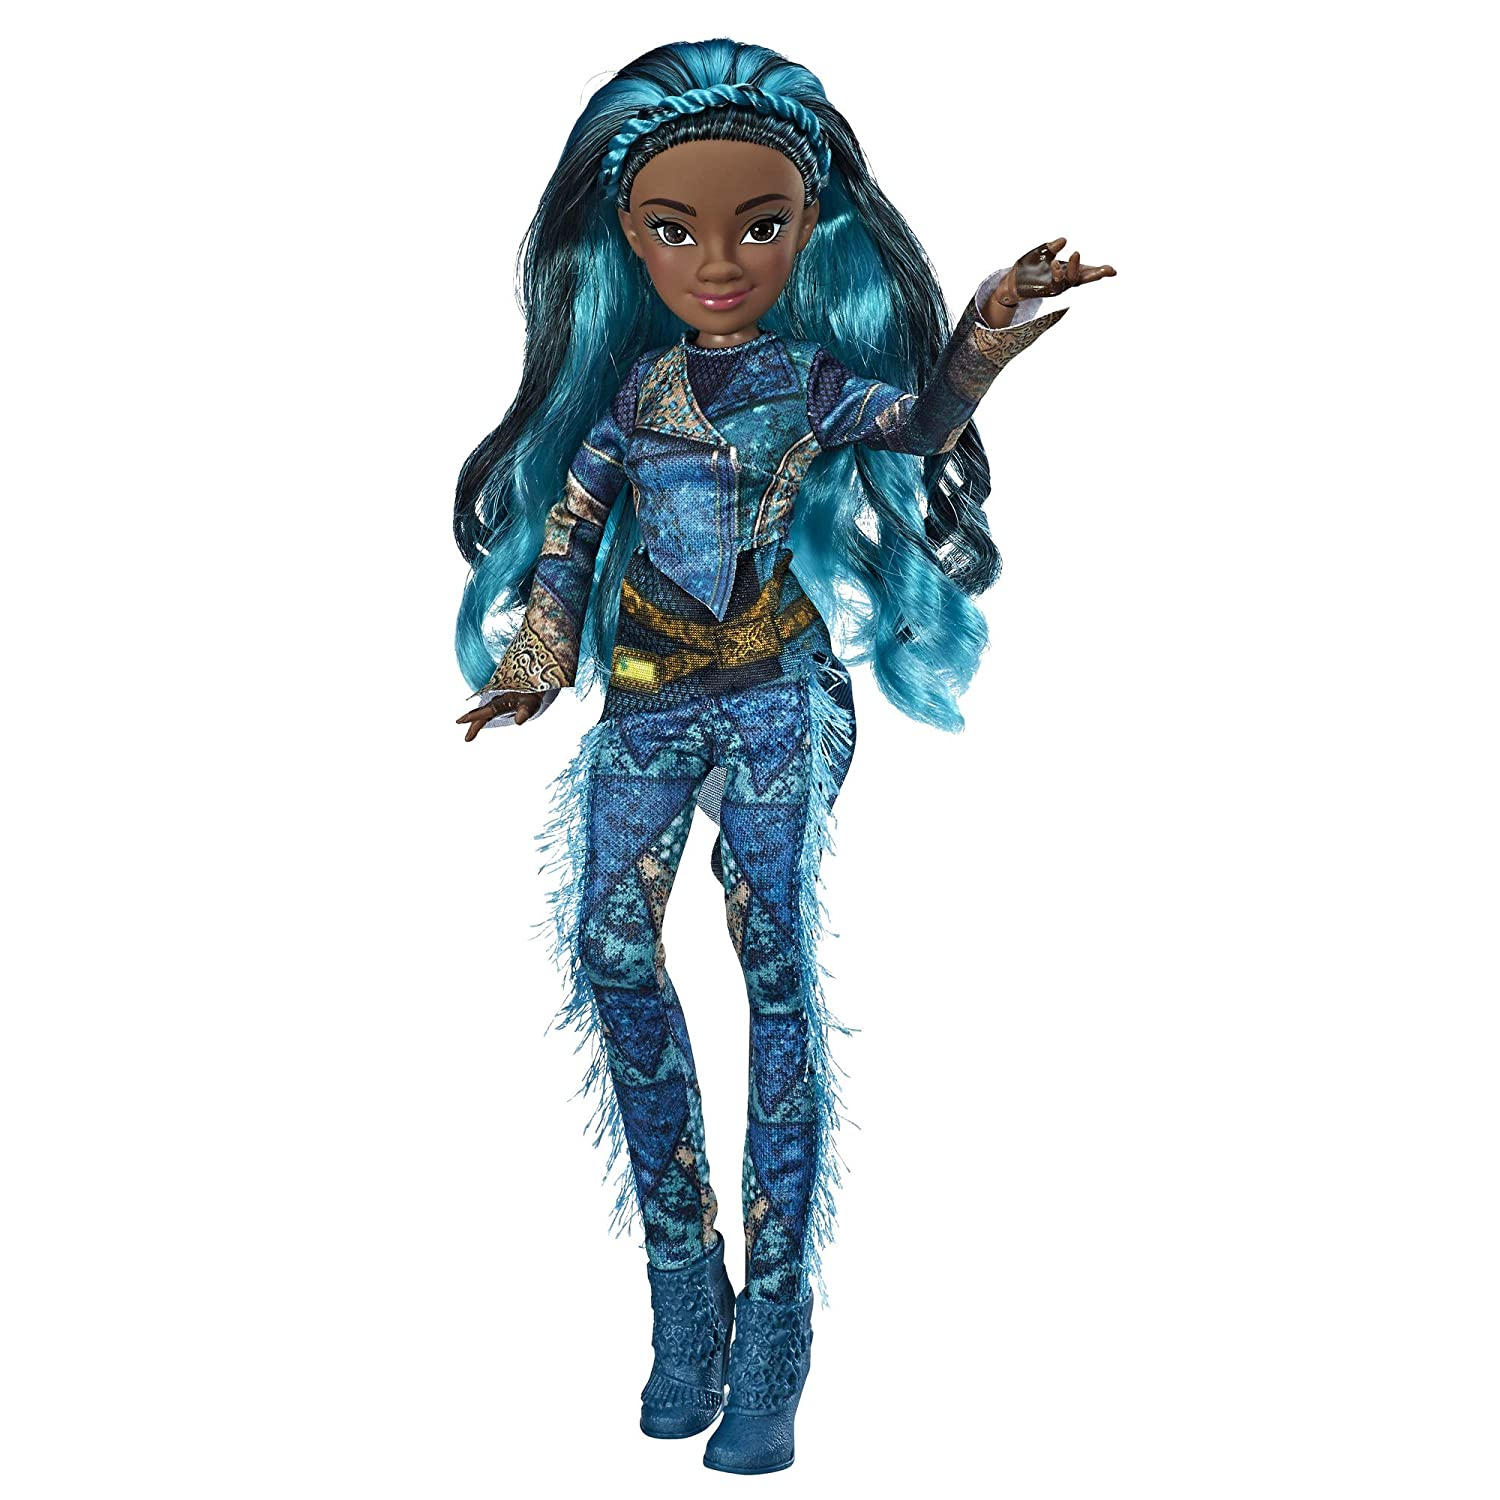 Disney Descendants Uma Fashion Doll, Inspired by Descendants 3